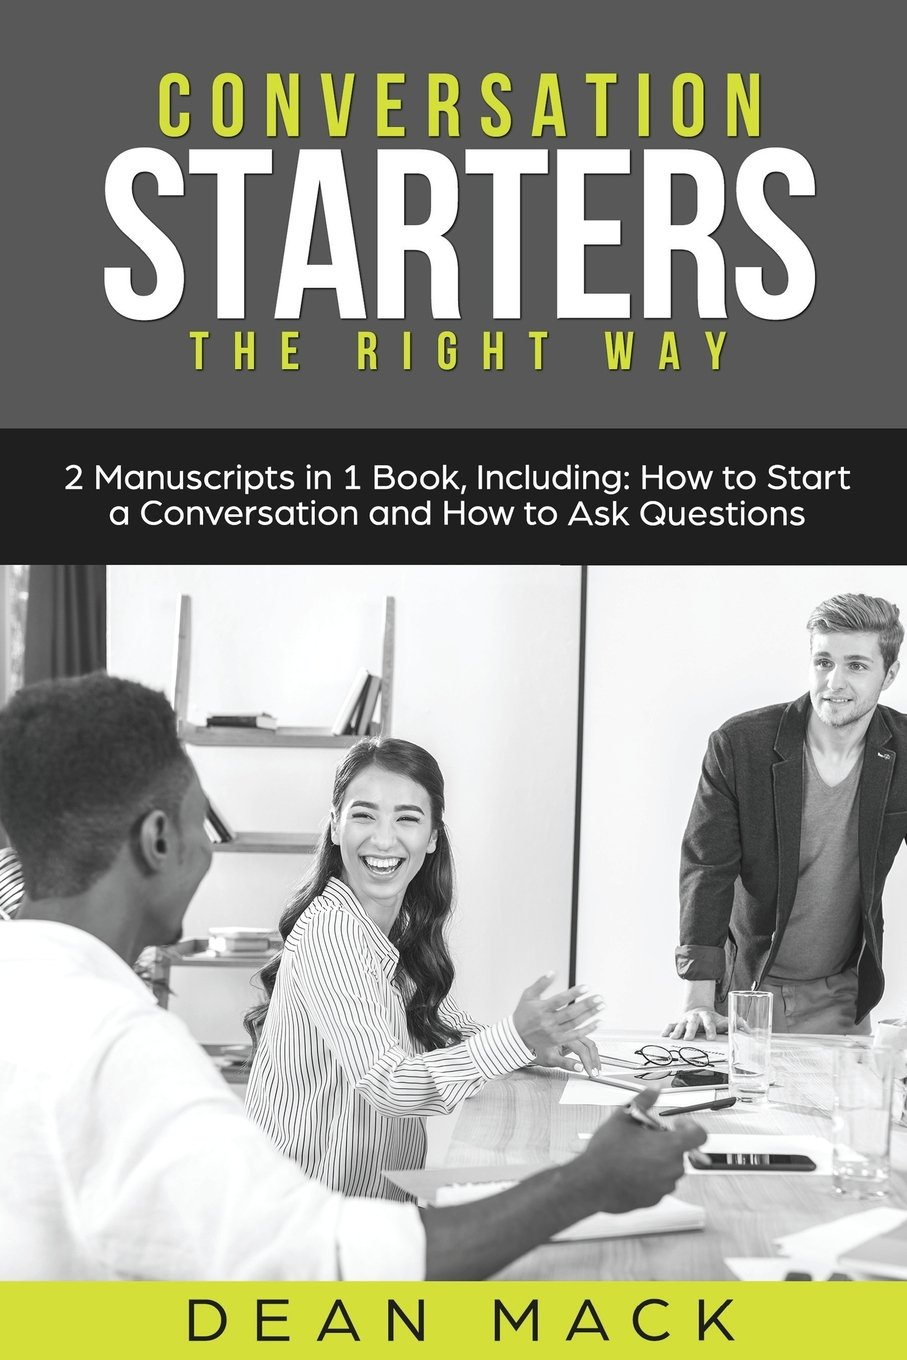 Conversation Starters: The Right Way - Bundle - The Only 2 Books You Need to Master How to Start Conversations, Small Talk and Conversation Skills Today (Social Skills Best Seller) (Volume 19)